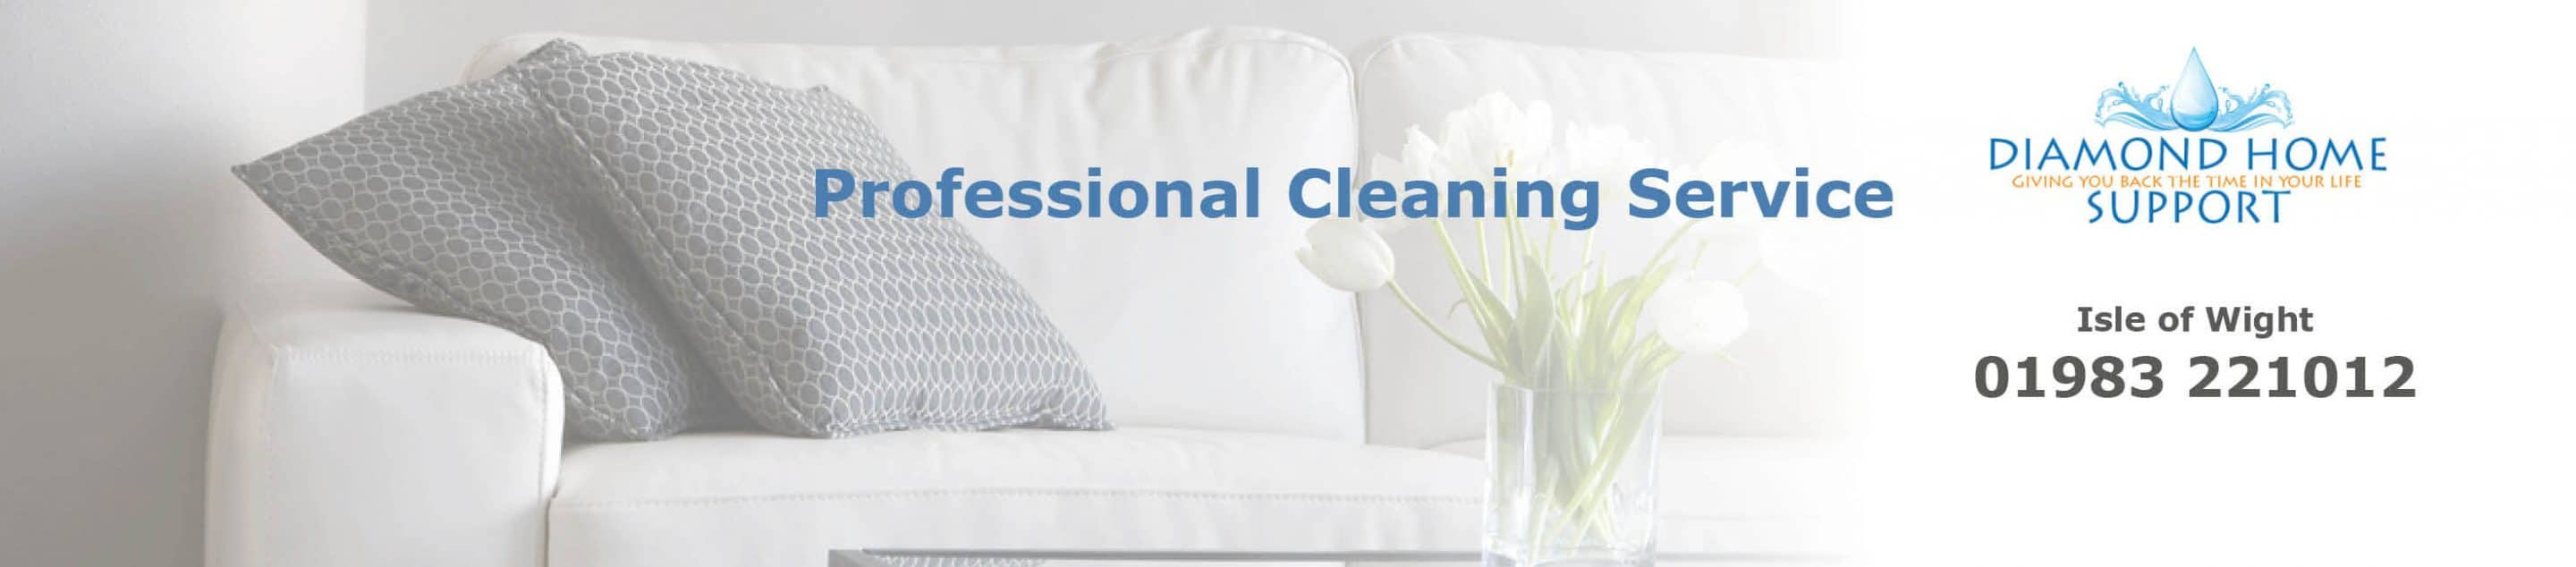 Cleaners in Isle of Wight